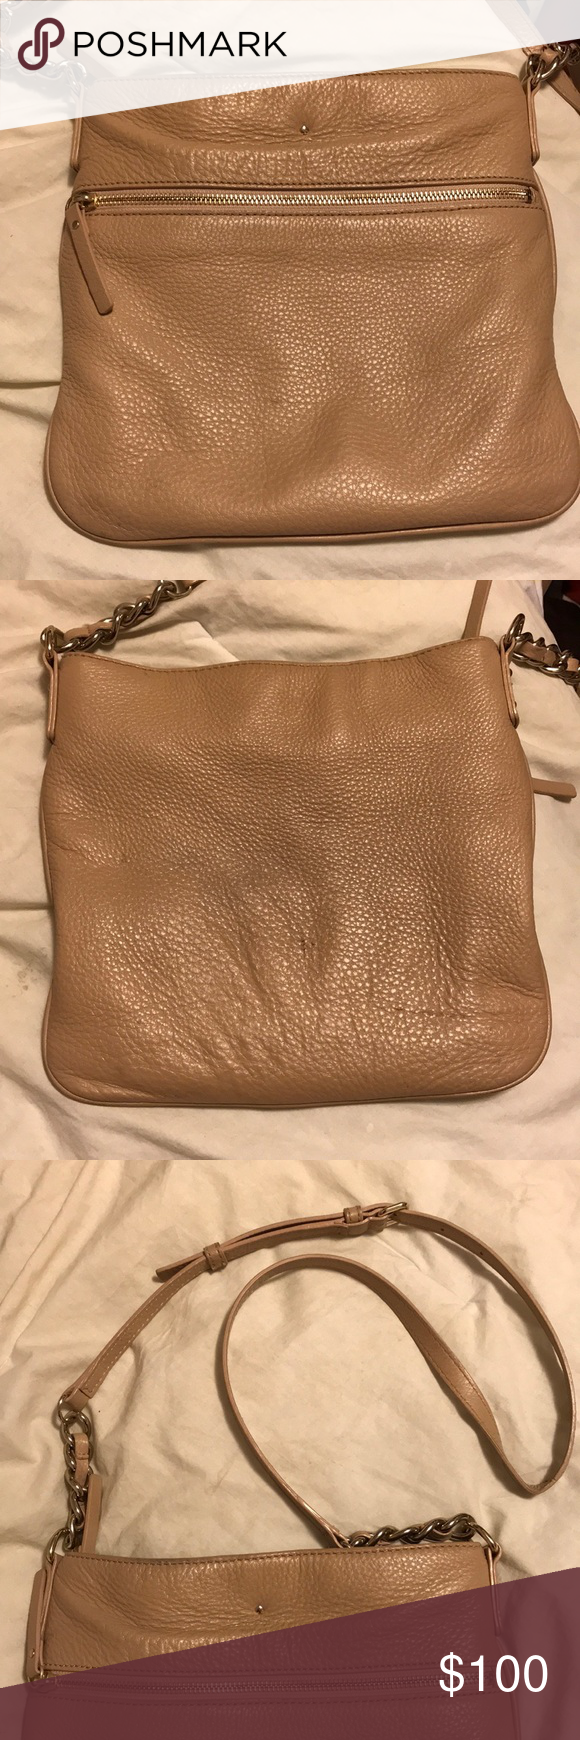 Kate Spade Cobble Hill Ellen Crossbody Affogatokate Bag